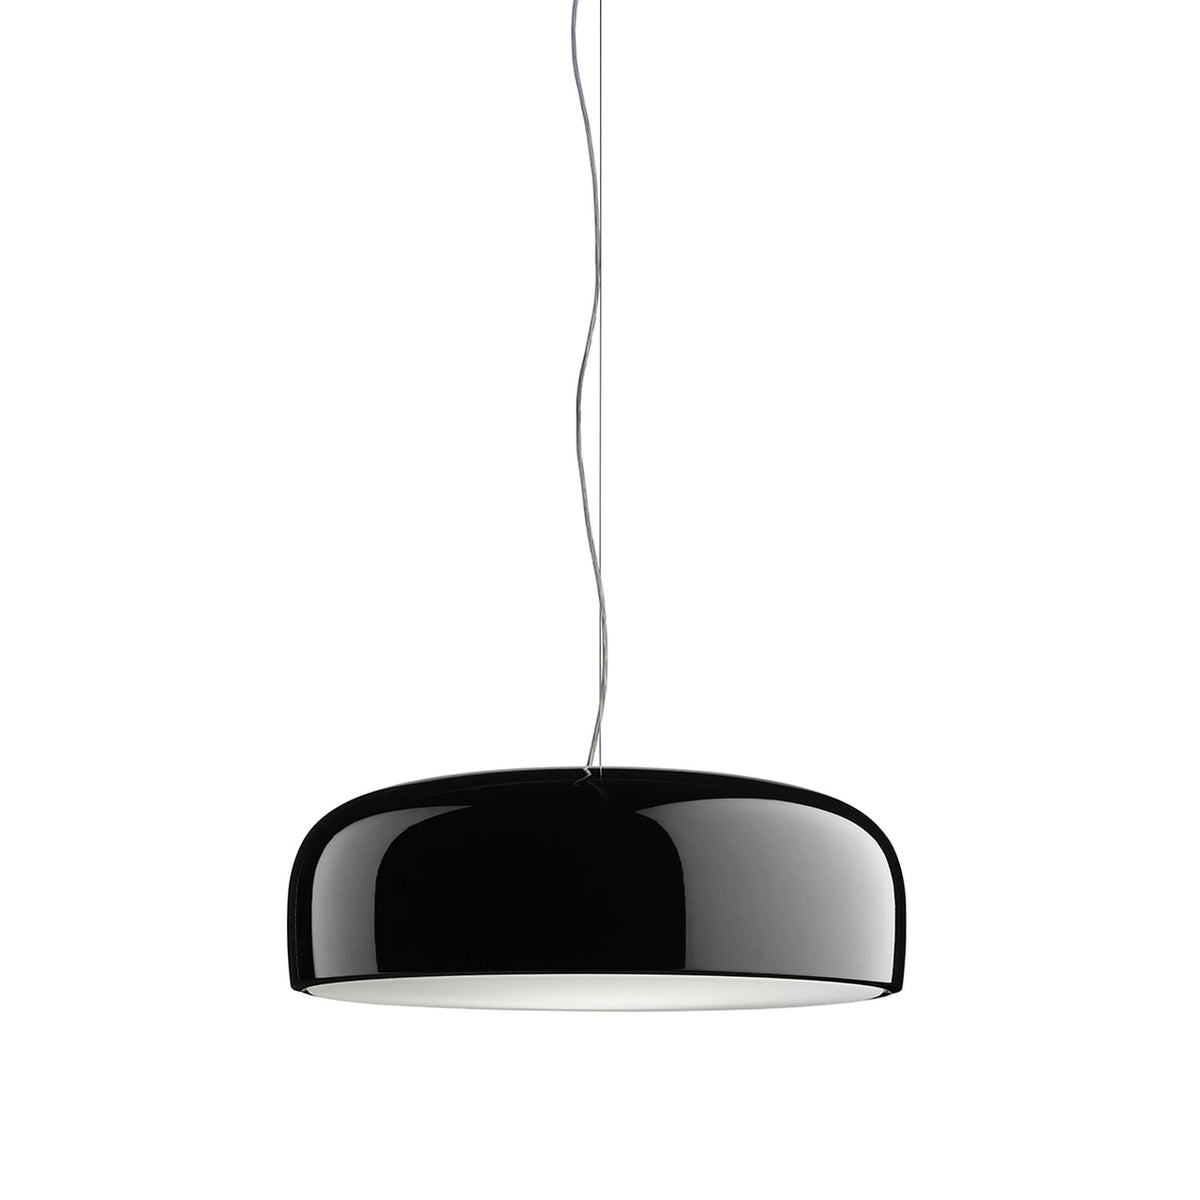 Smithfield S - Suspension Dimmable Pendant Lamp in LED